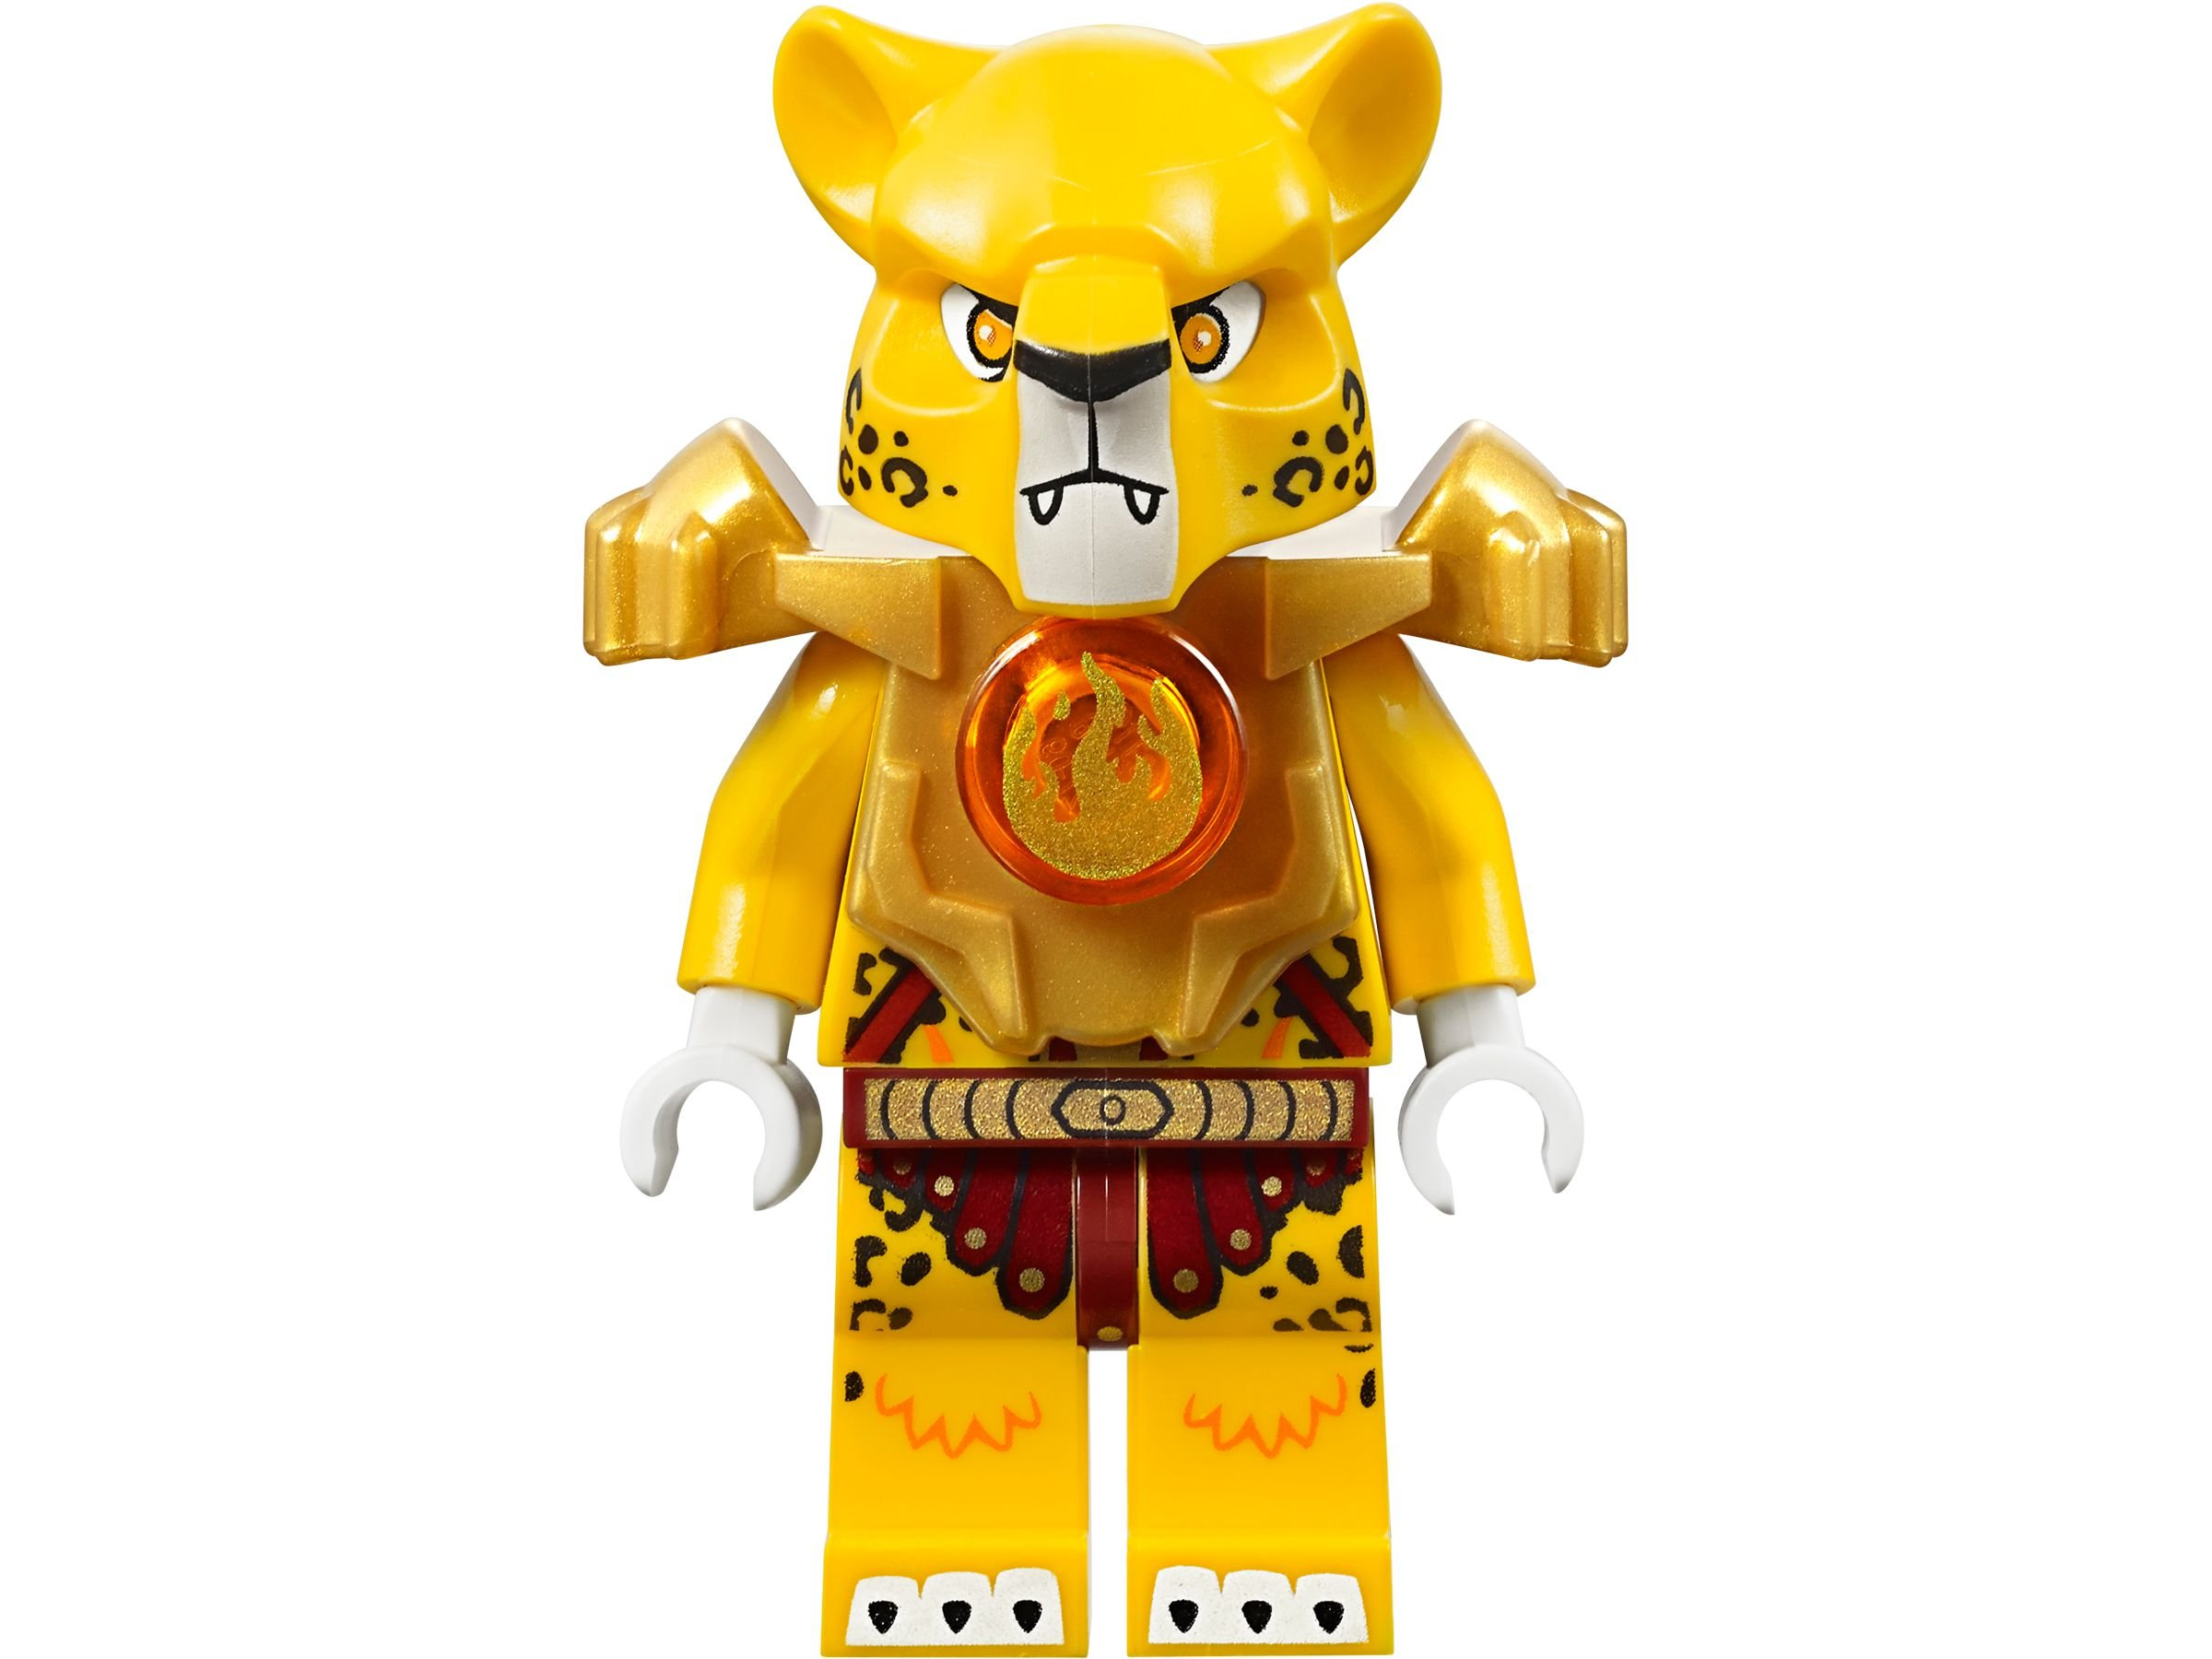 LEGO Legends Of Chima 70141 Vardys Eis-Gleiter LEGO_70141_alt6.jpg